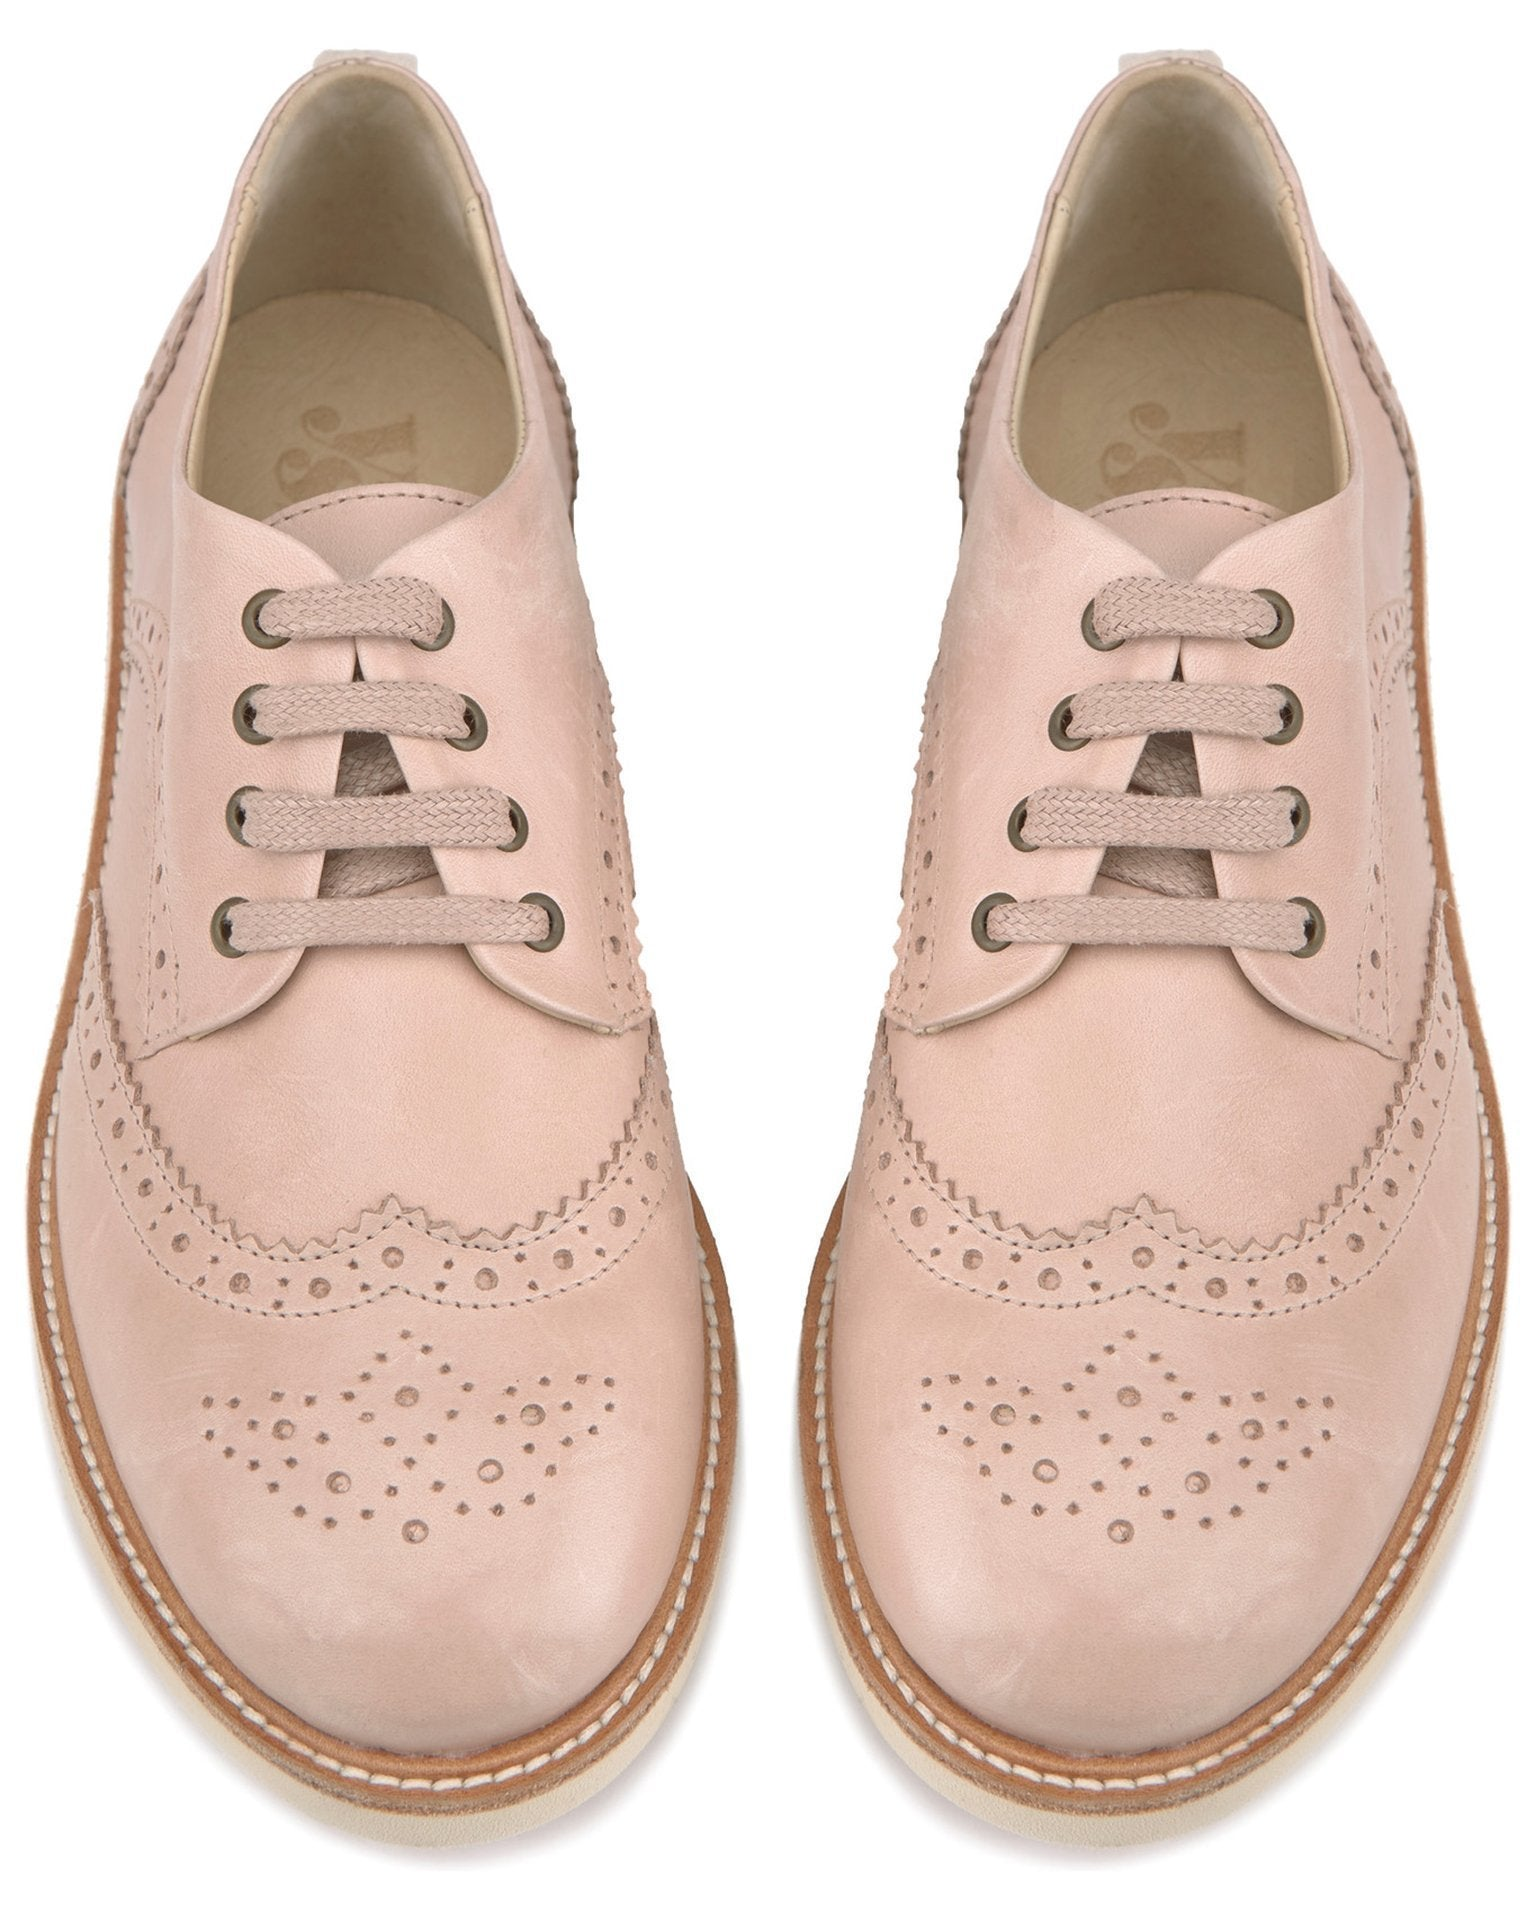 Young Soles Shoes Nude Pink / 36 Brogue Shoe in Nude Pink